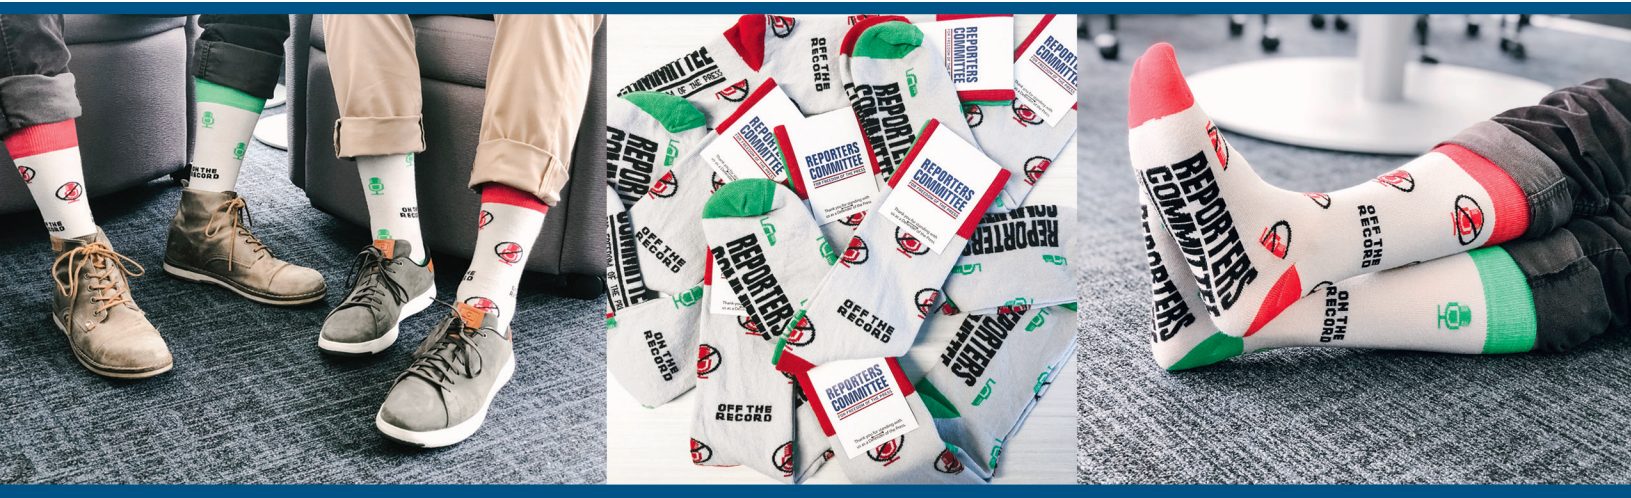 Three images showing the Reporters Committee on-the-record and off-the-record socks. The socks are available for free to new monthly donors.